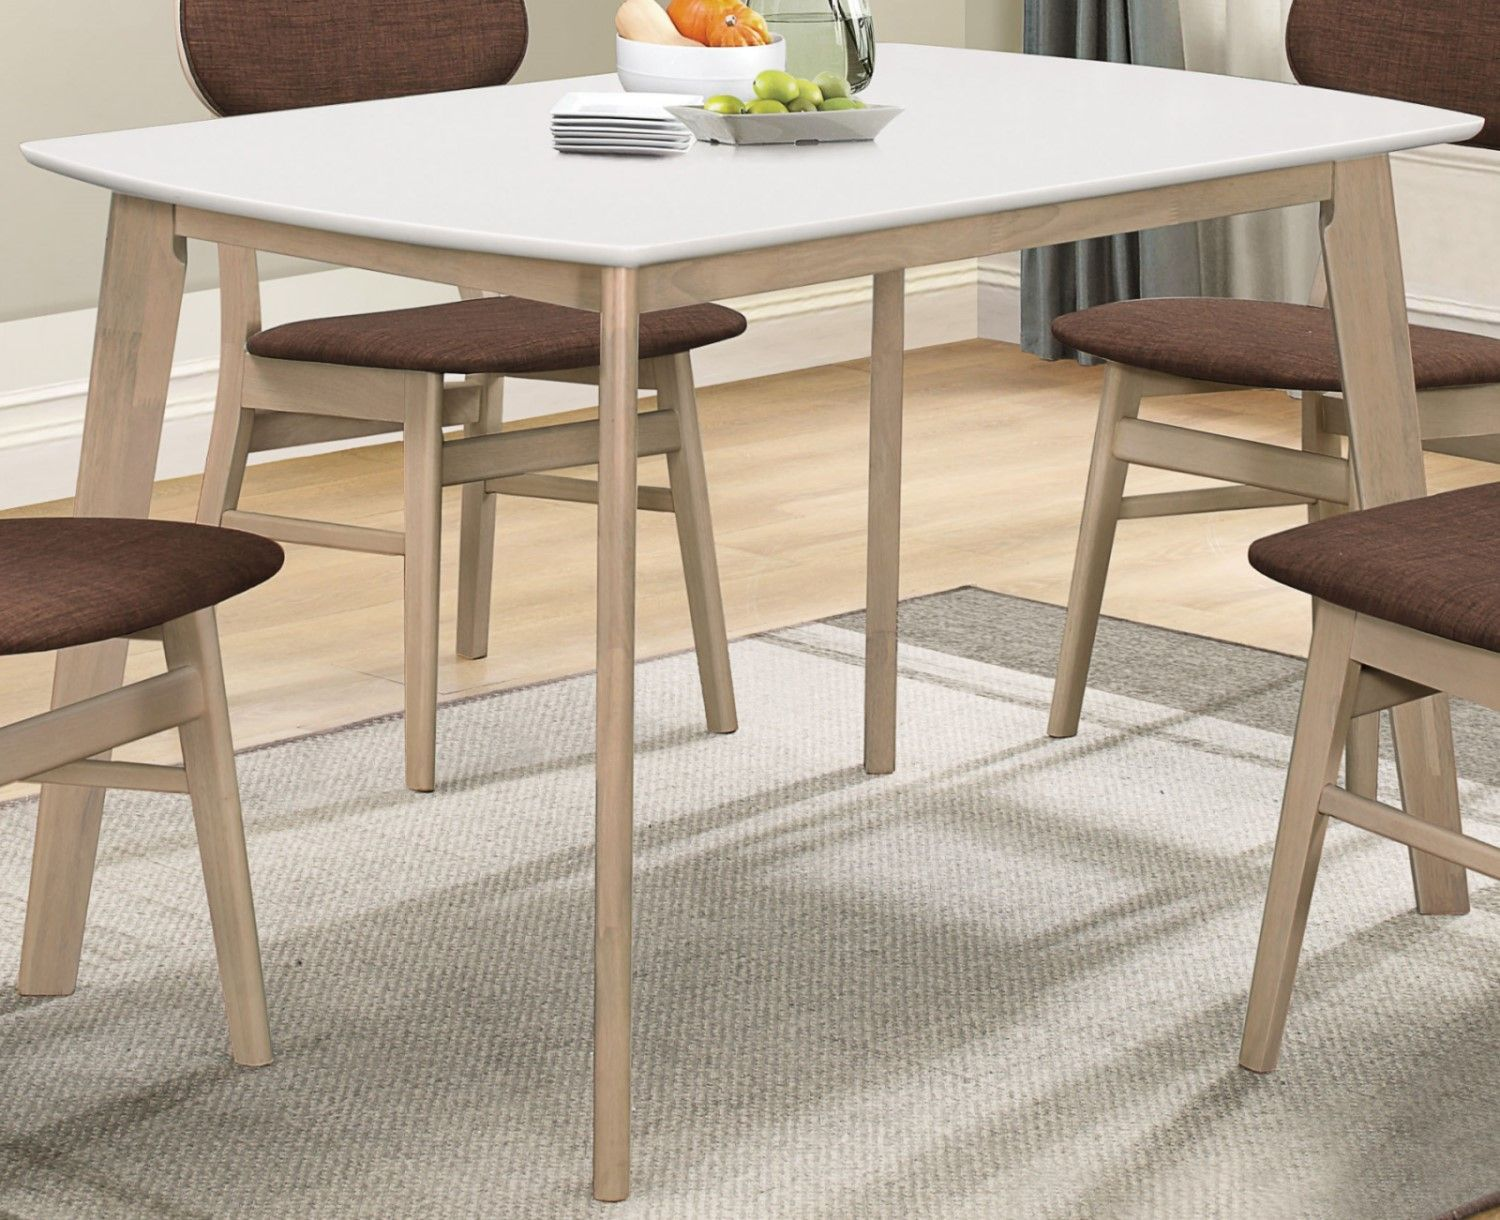 """Emersyn 47"""" White Top Dining Table with Wooden Legs in ..."""